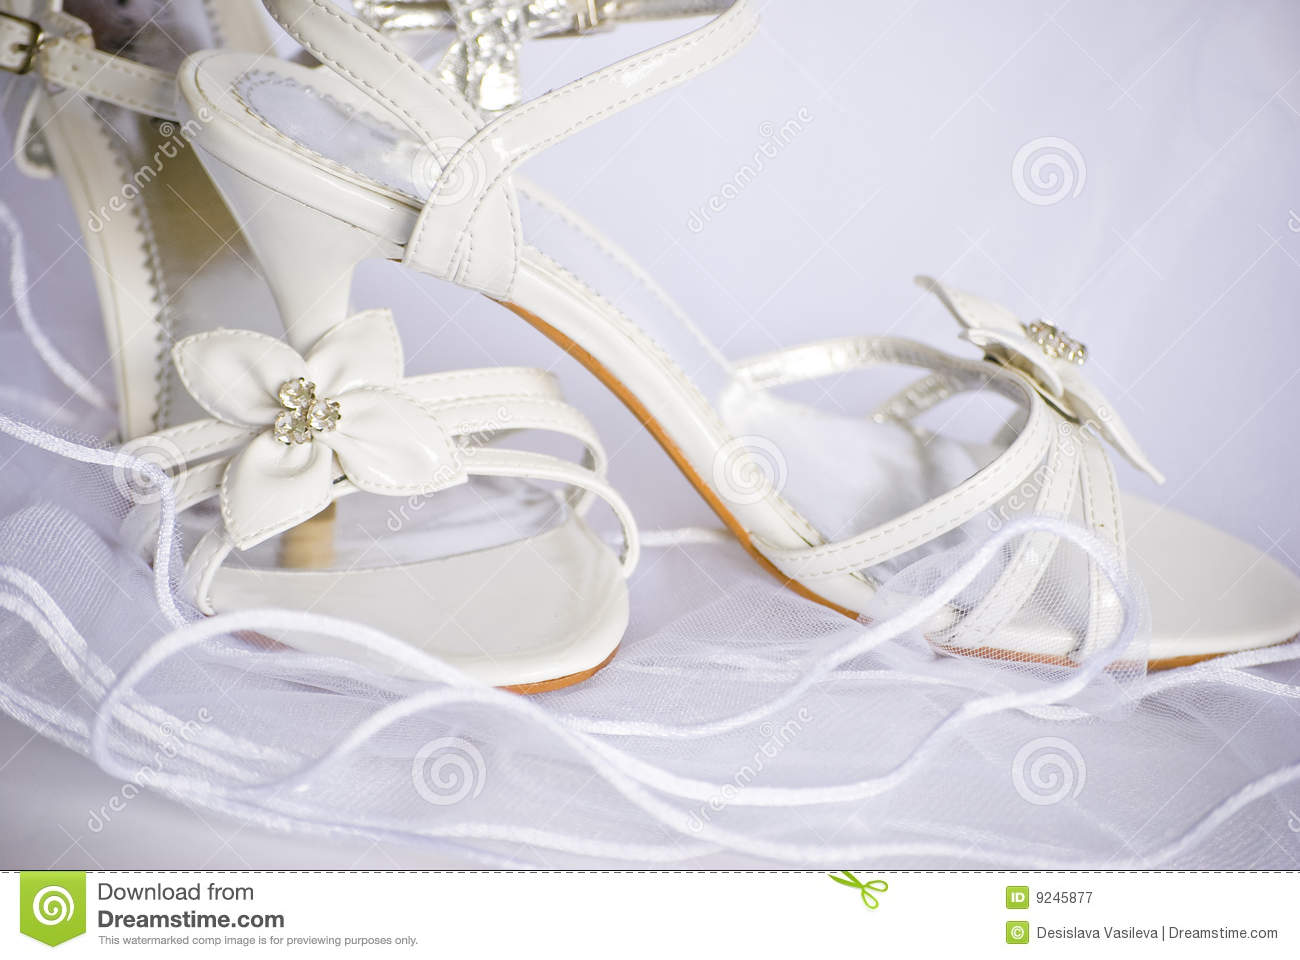 bcc055191b481 Royalty-Free Stock Photo. Wedding shoes with flowers over veil